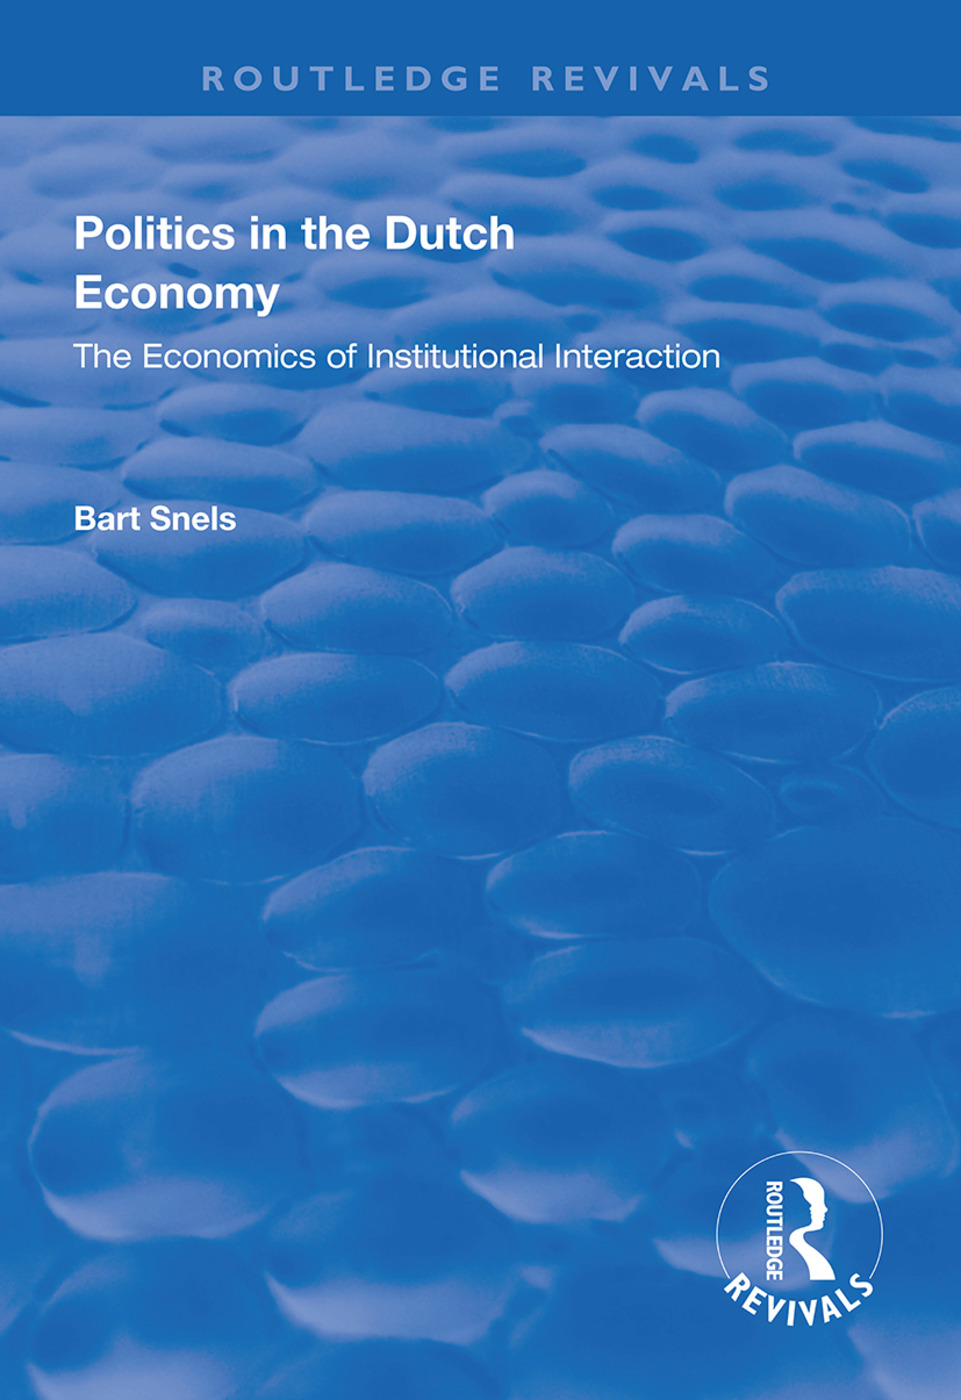 Politics in the Dutch Economy: The Economics of Institutional Interaction, 1st Edition (Paperback) book cover